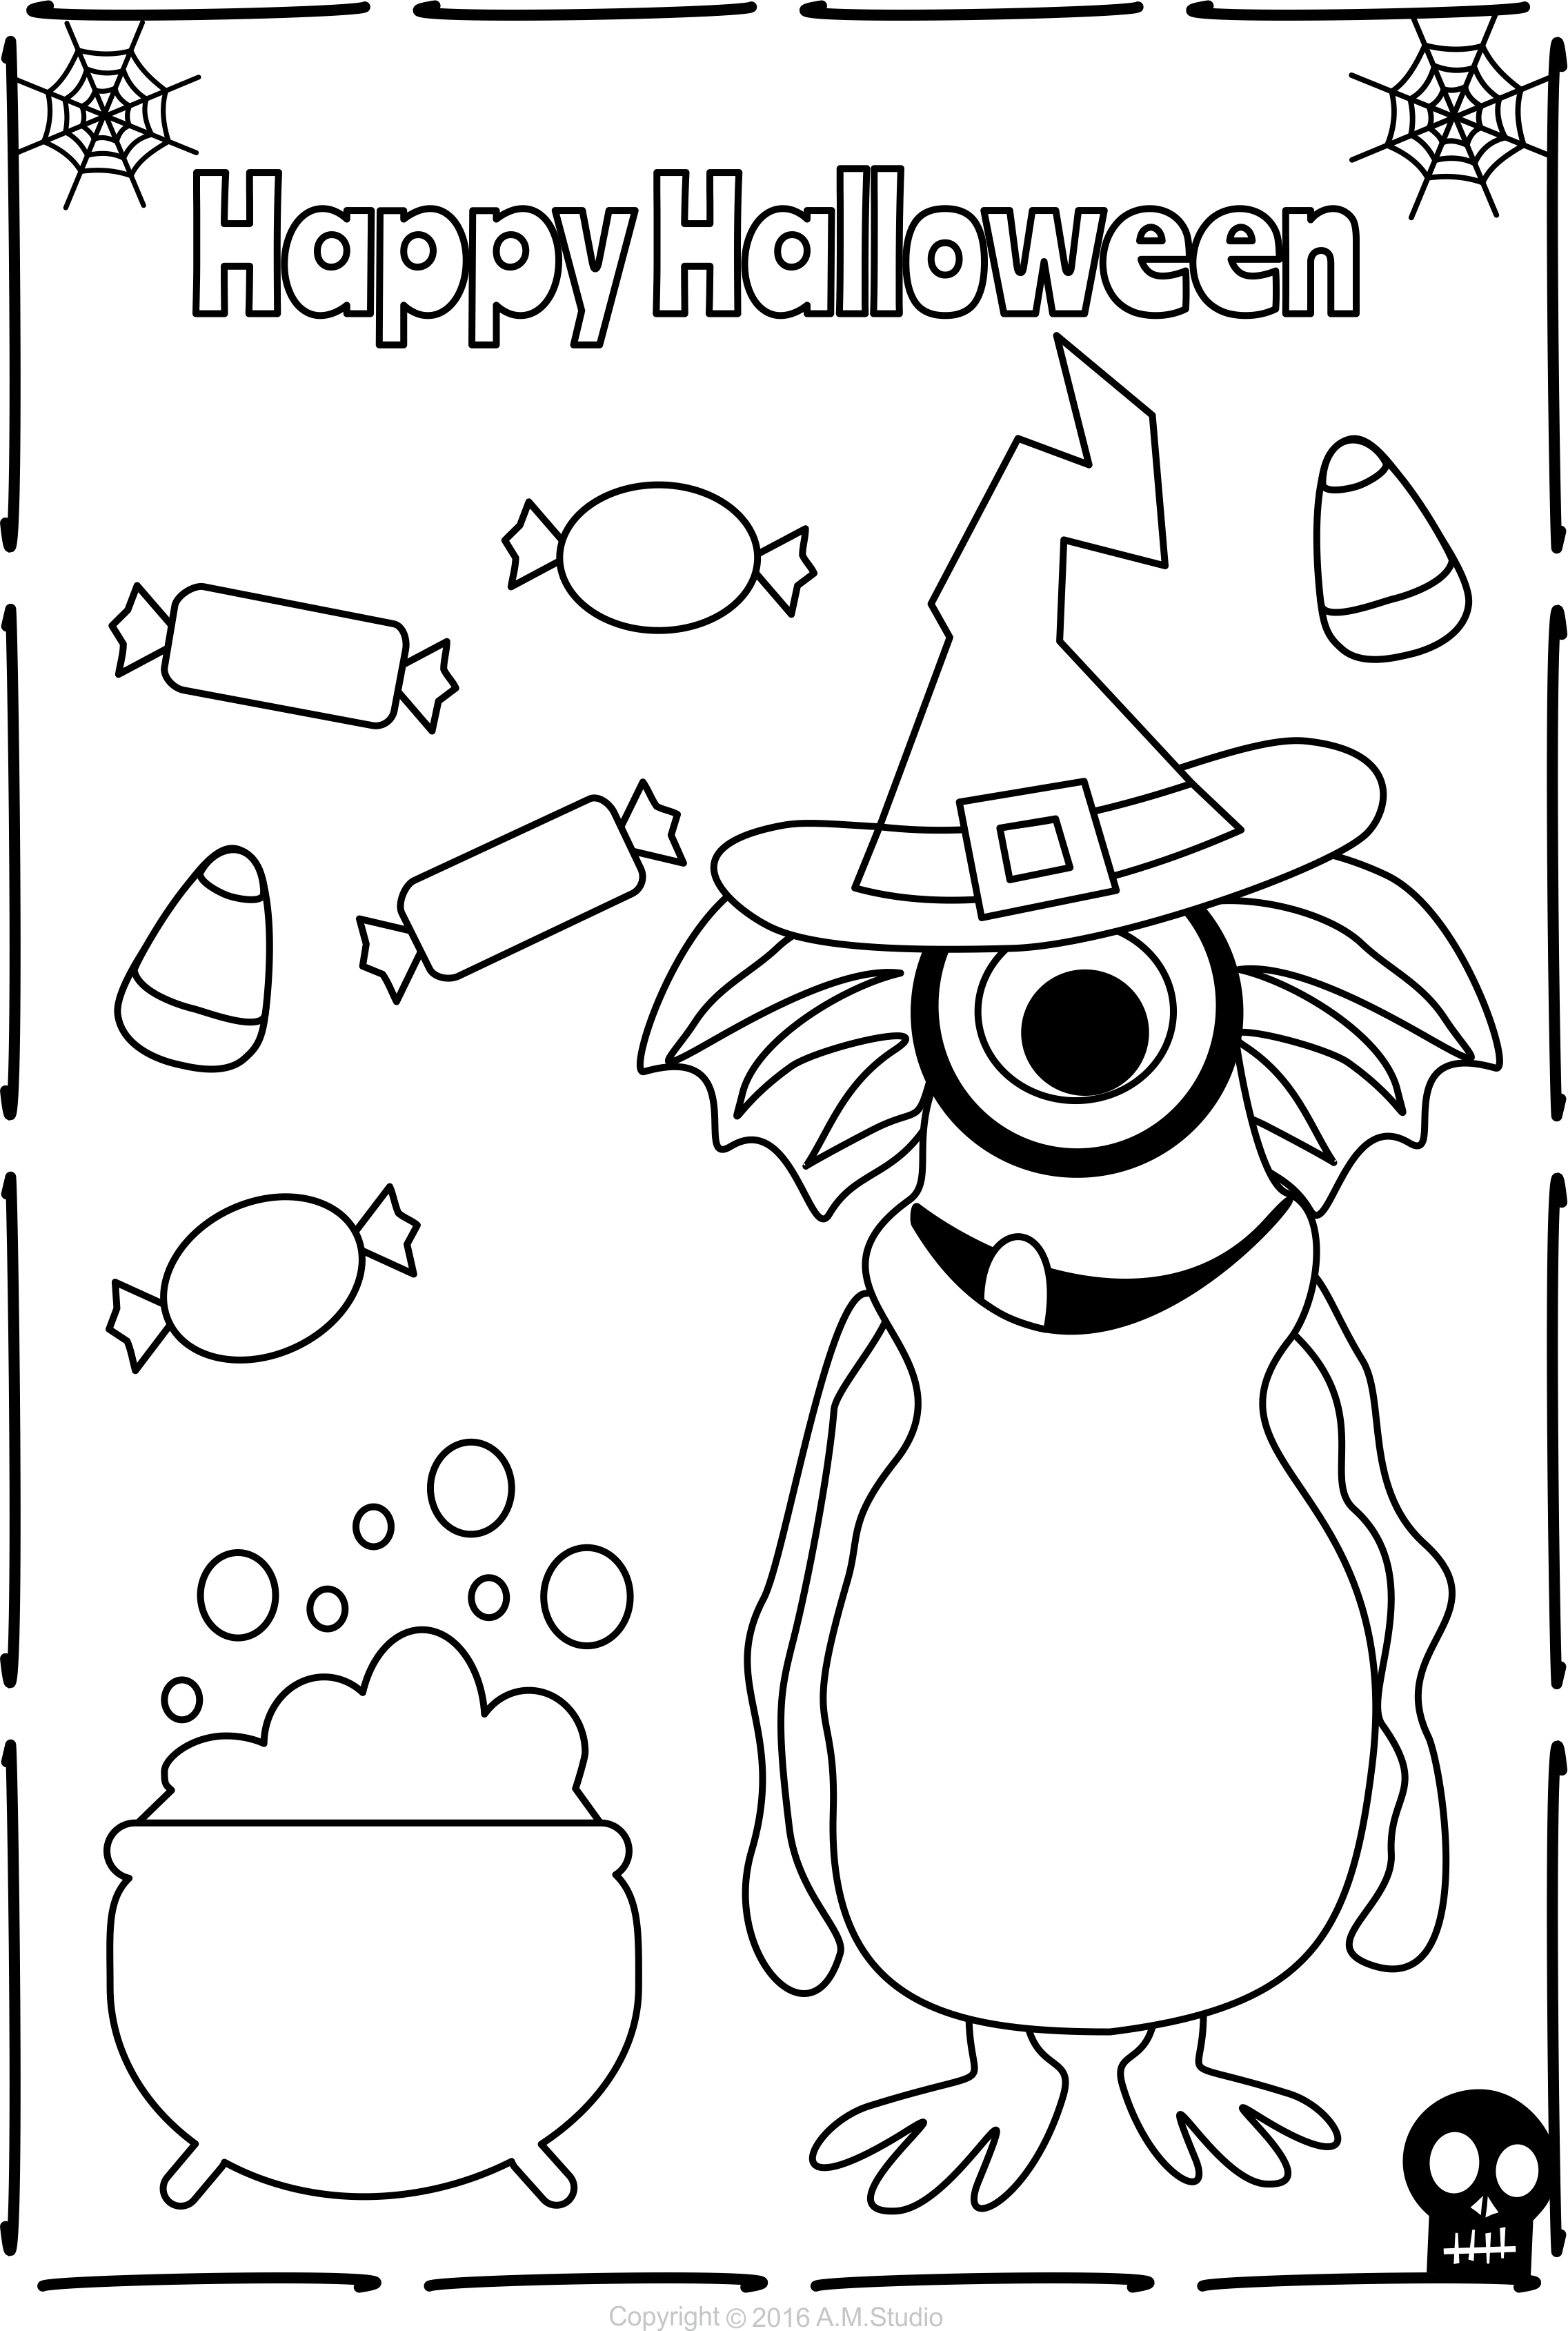 Halloween Coloring Pages | Halloween coloring